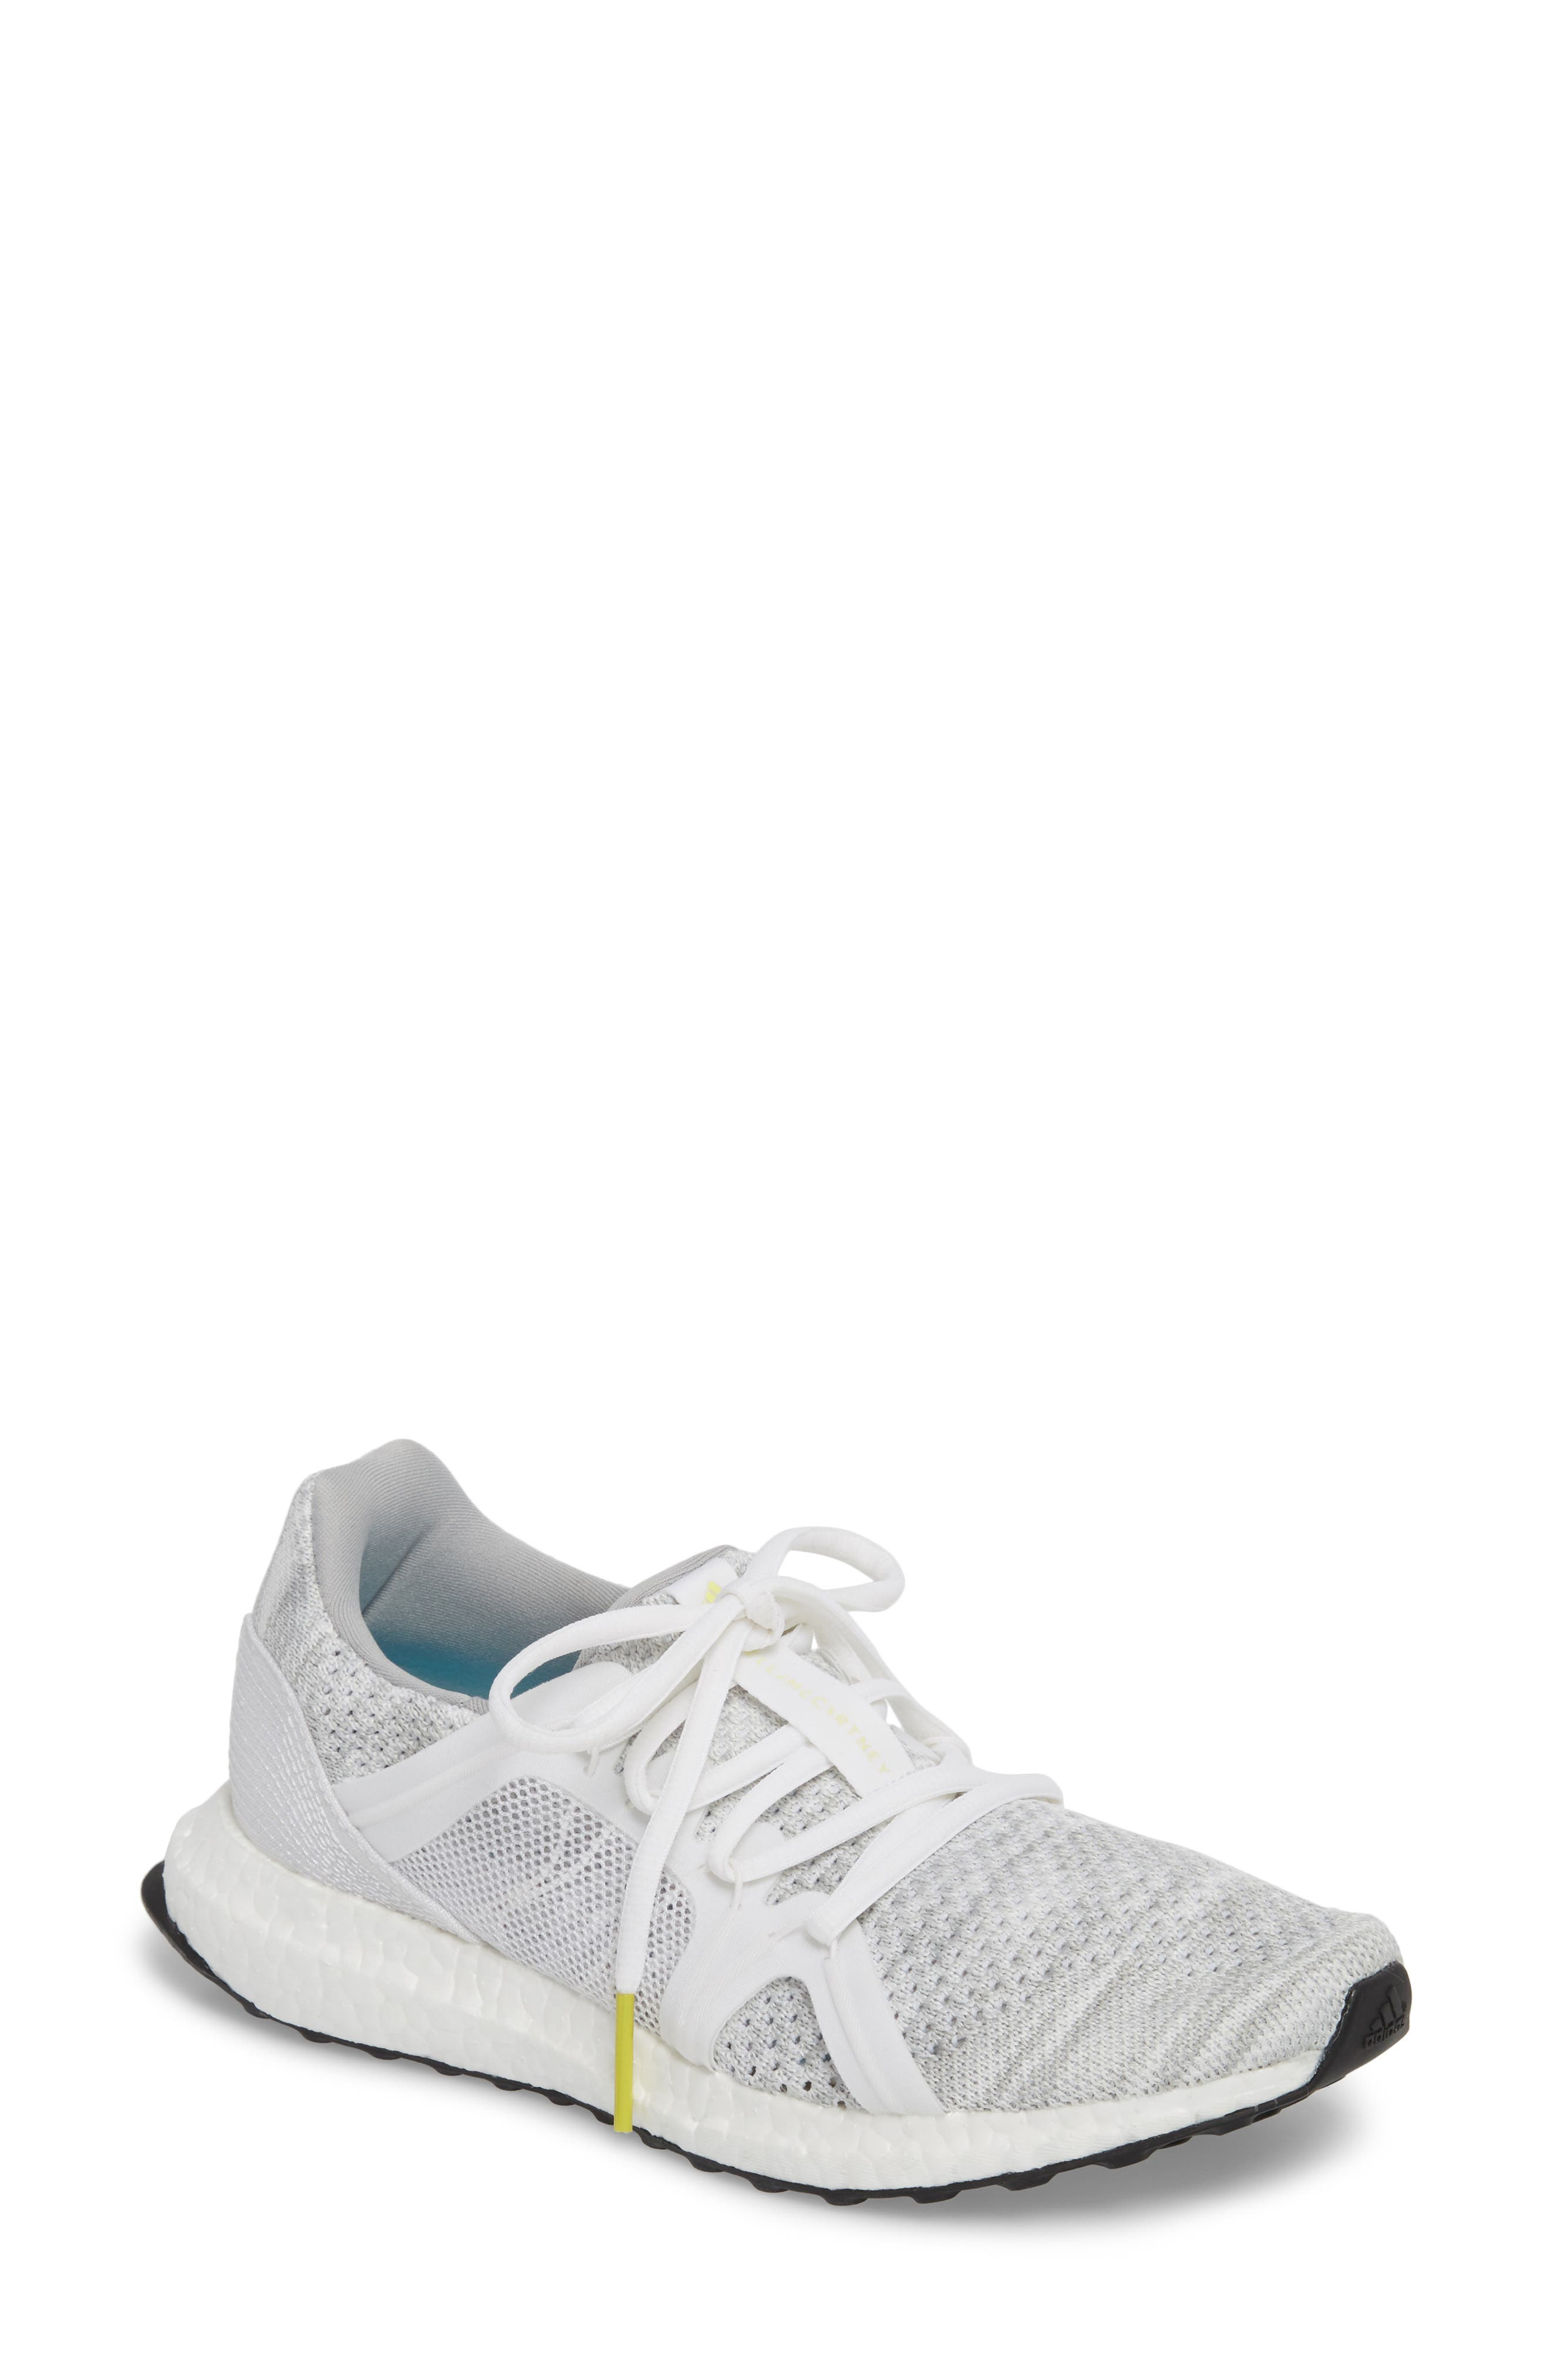 by Stella McCartney UltraBoost x Parley Running Shoe,                             Main thumbnail 4, color,